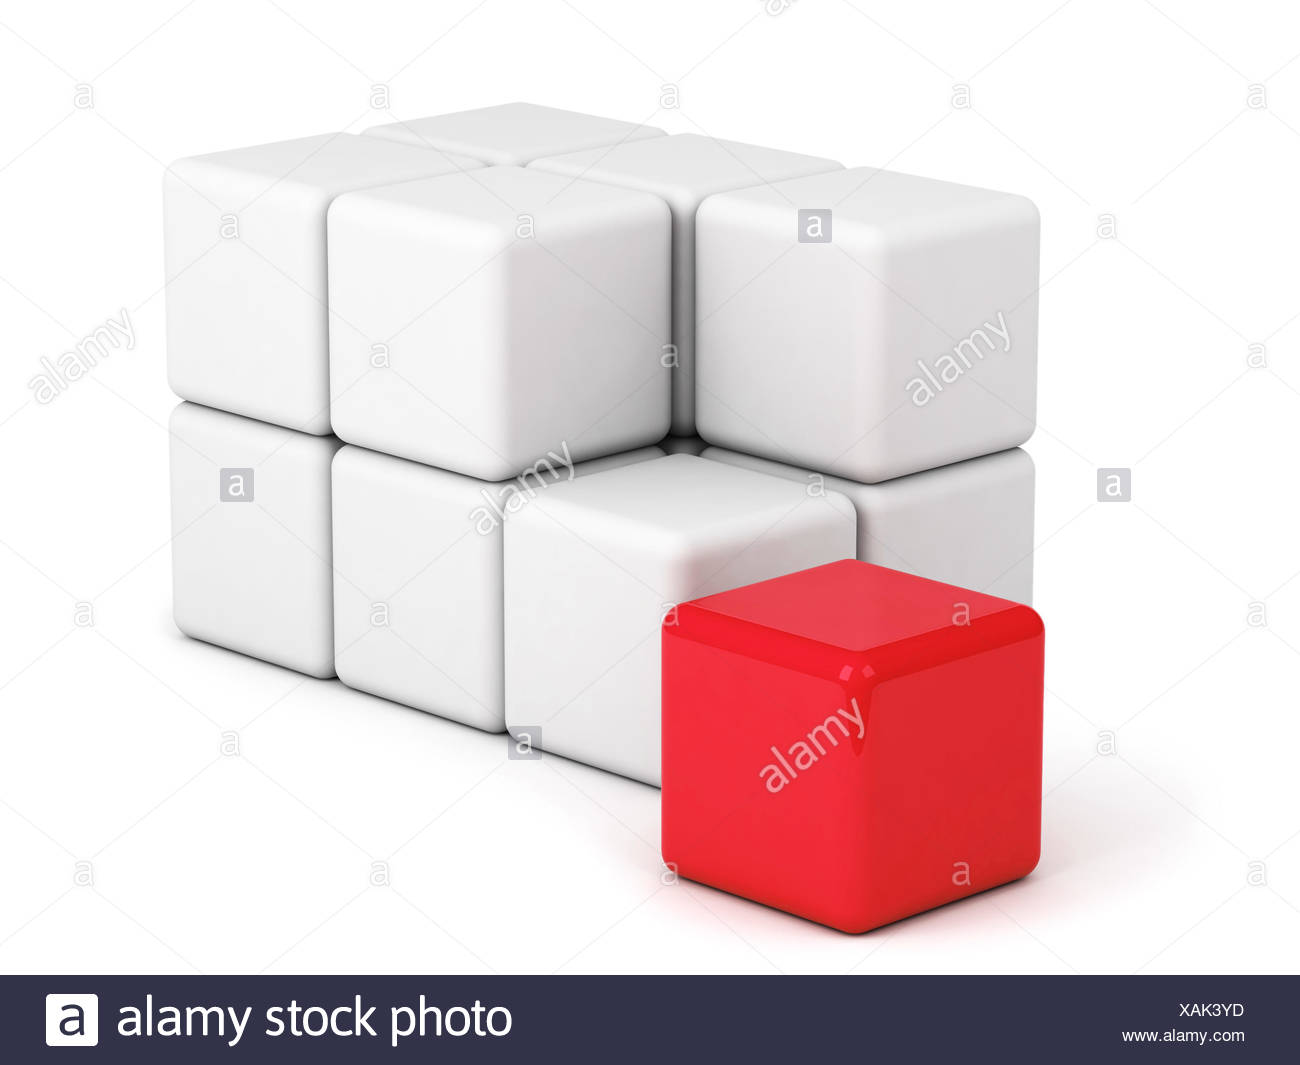 bright red box ouf of the crowd - Stock Image